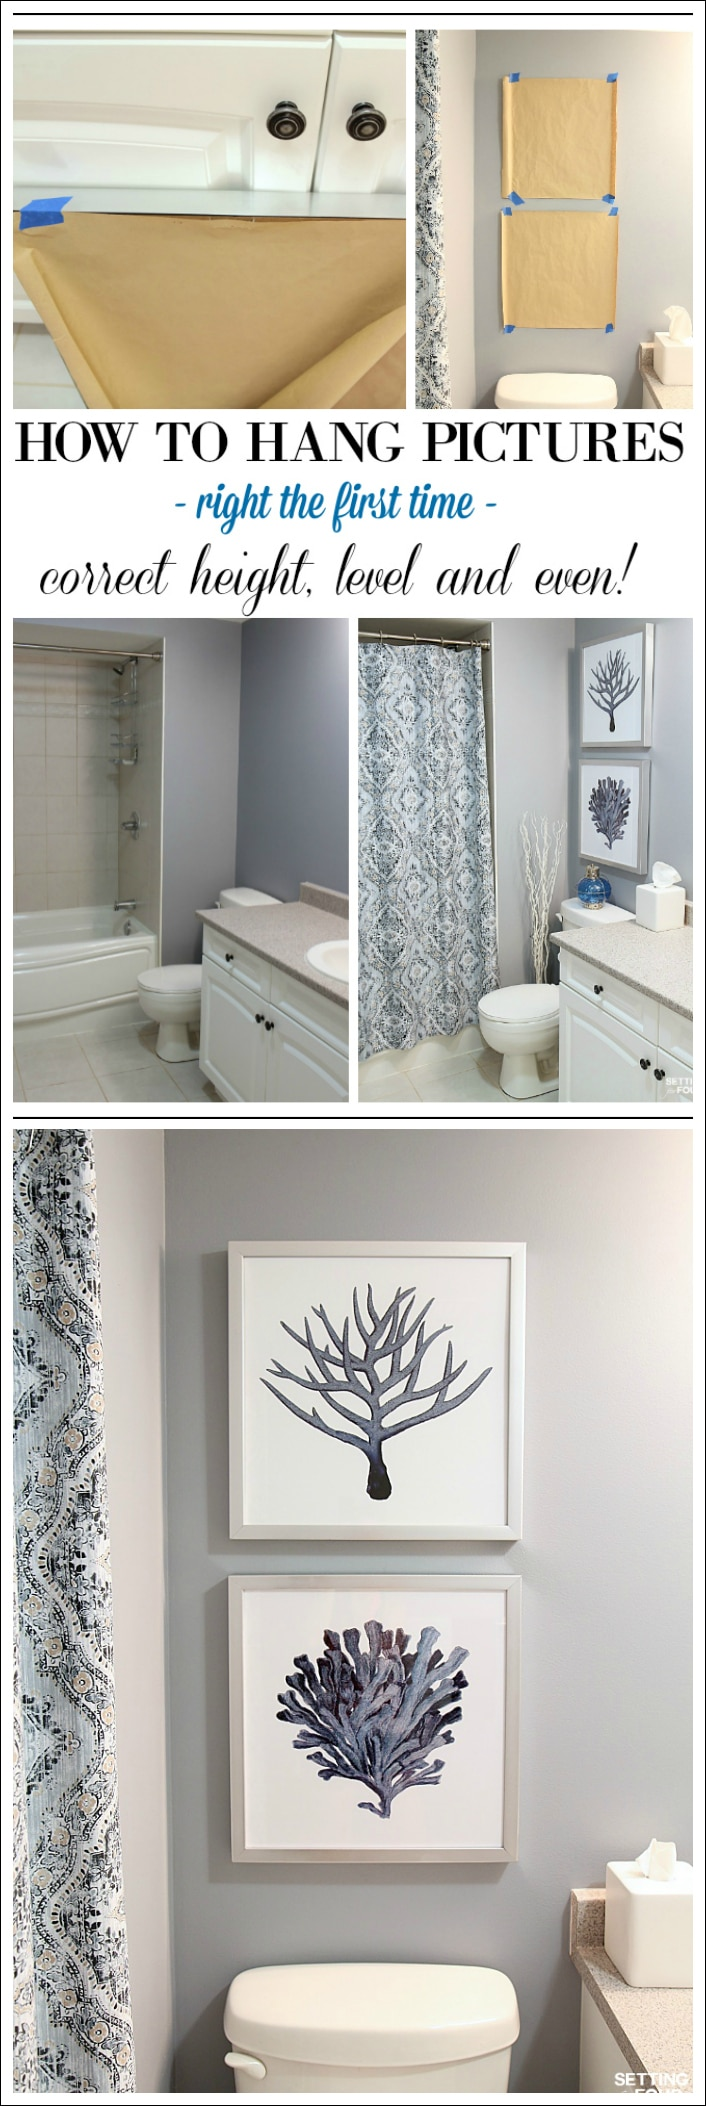 Charmant Pictures And Art Add Beauty To Any Room   Even The Bathroom! See How I